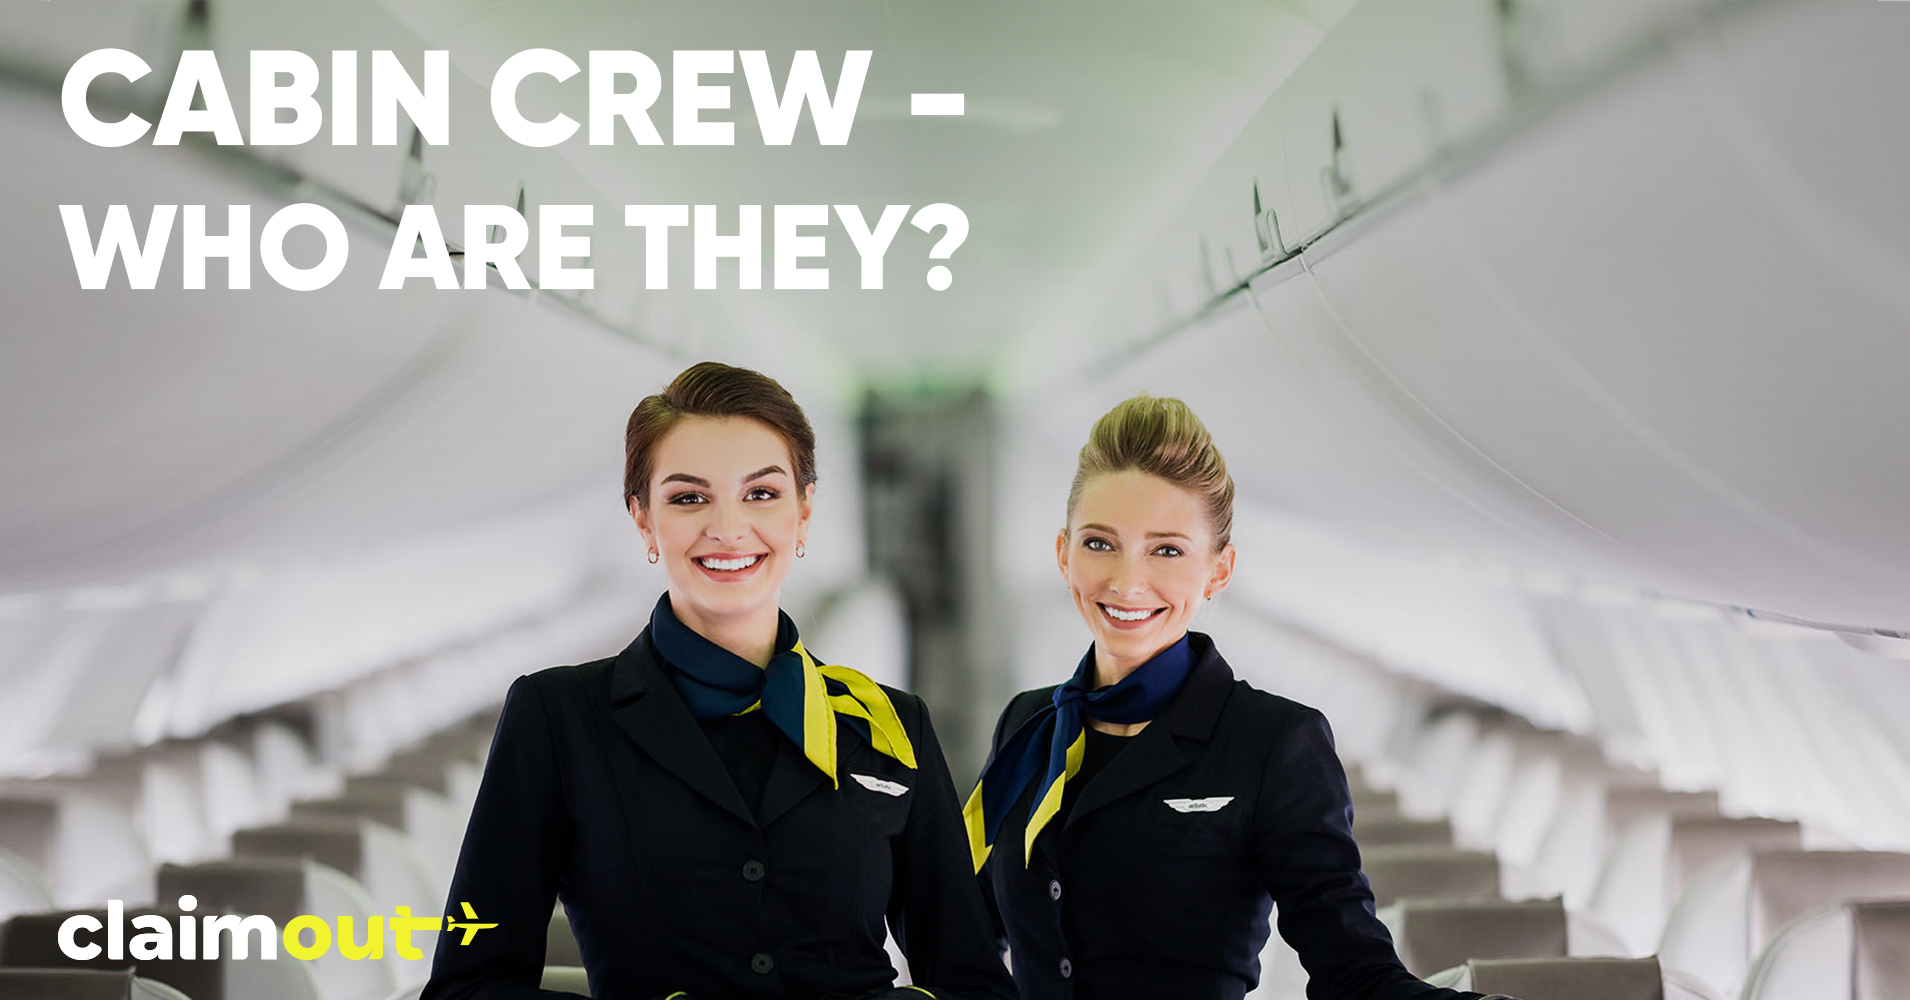 Cabin Crew and their role in the Airline industry